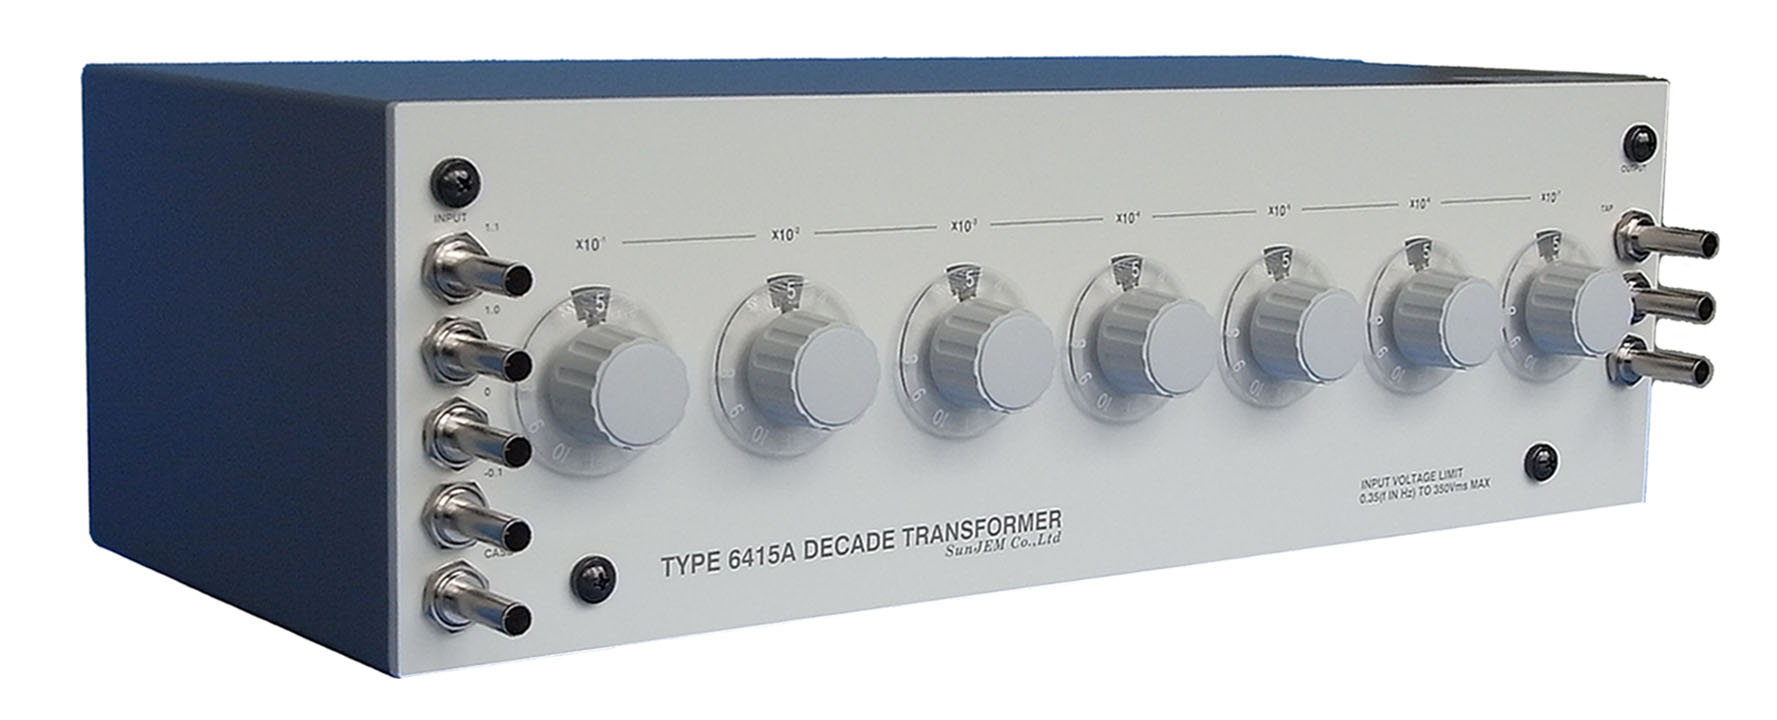 Decade Transformer(Inductive Voltage Divider) TYPE 6415A / 6425A